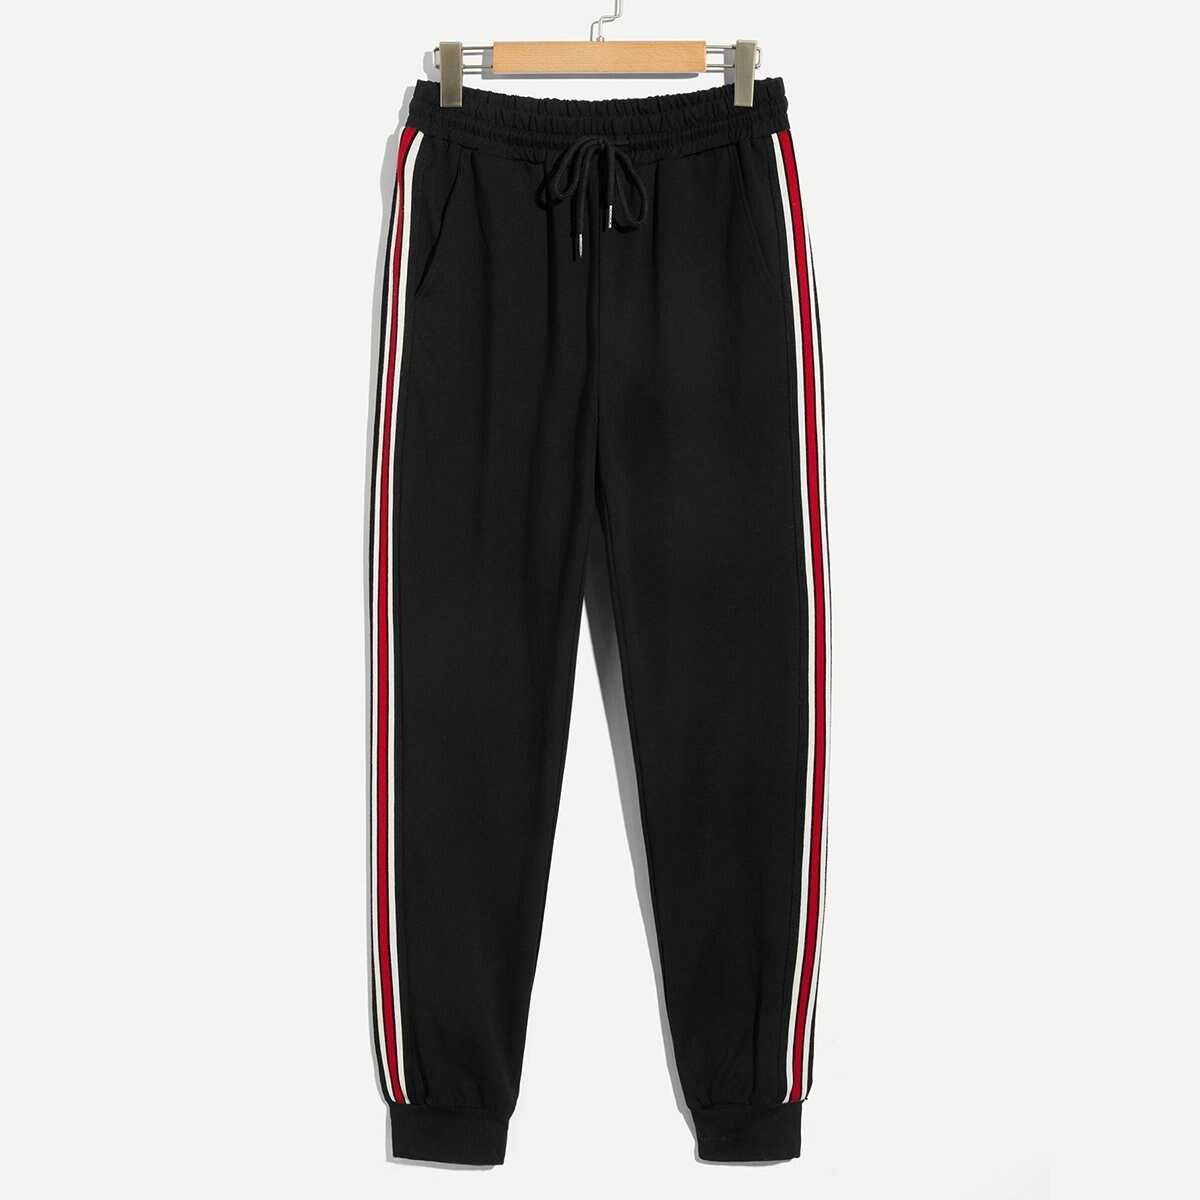 Men Contrast Striped Drawstring Waist Pants - Shein - GOOFASH